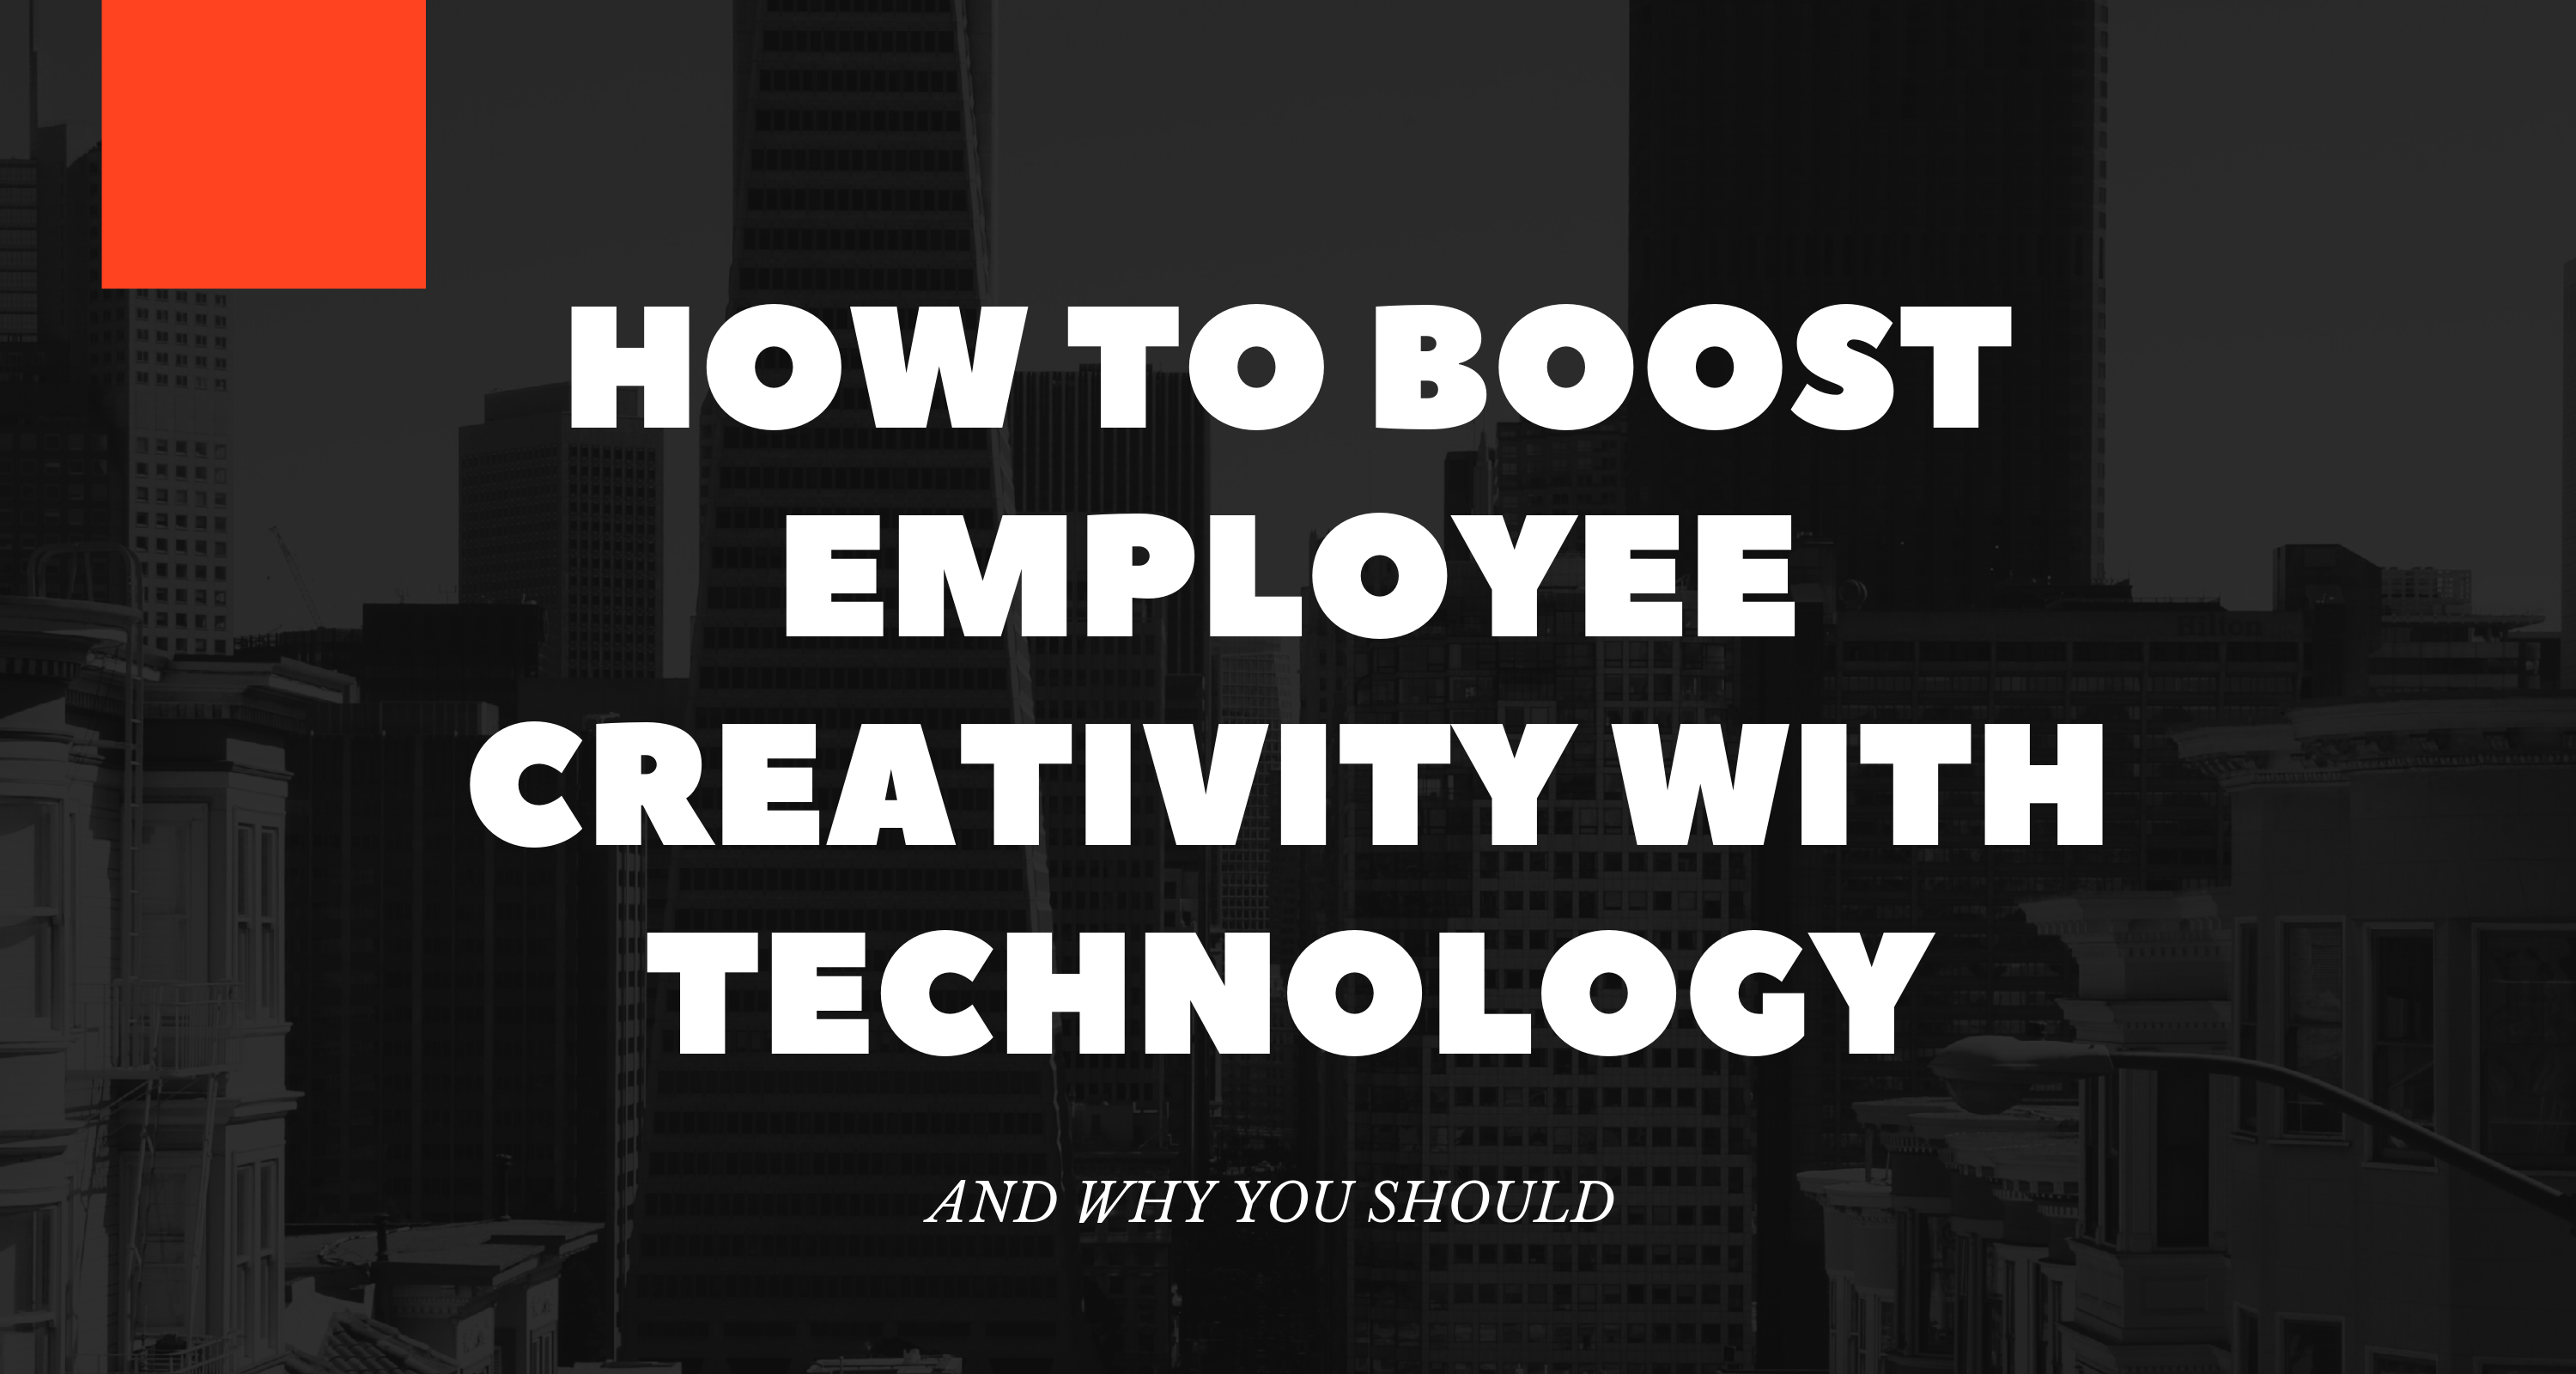 How to Boost Employee Creativity with Technology and Why You Should